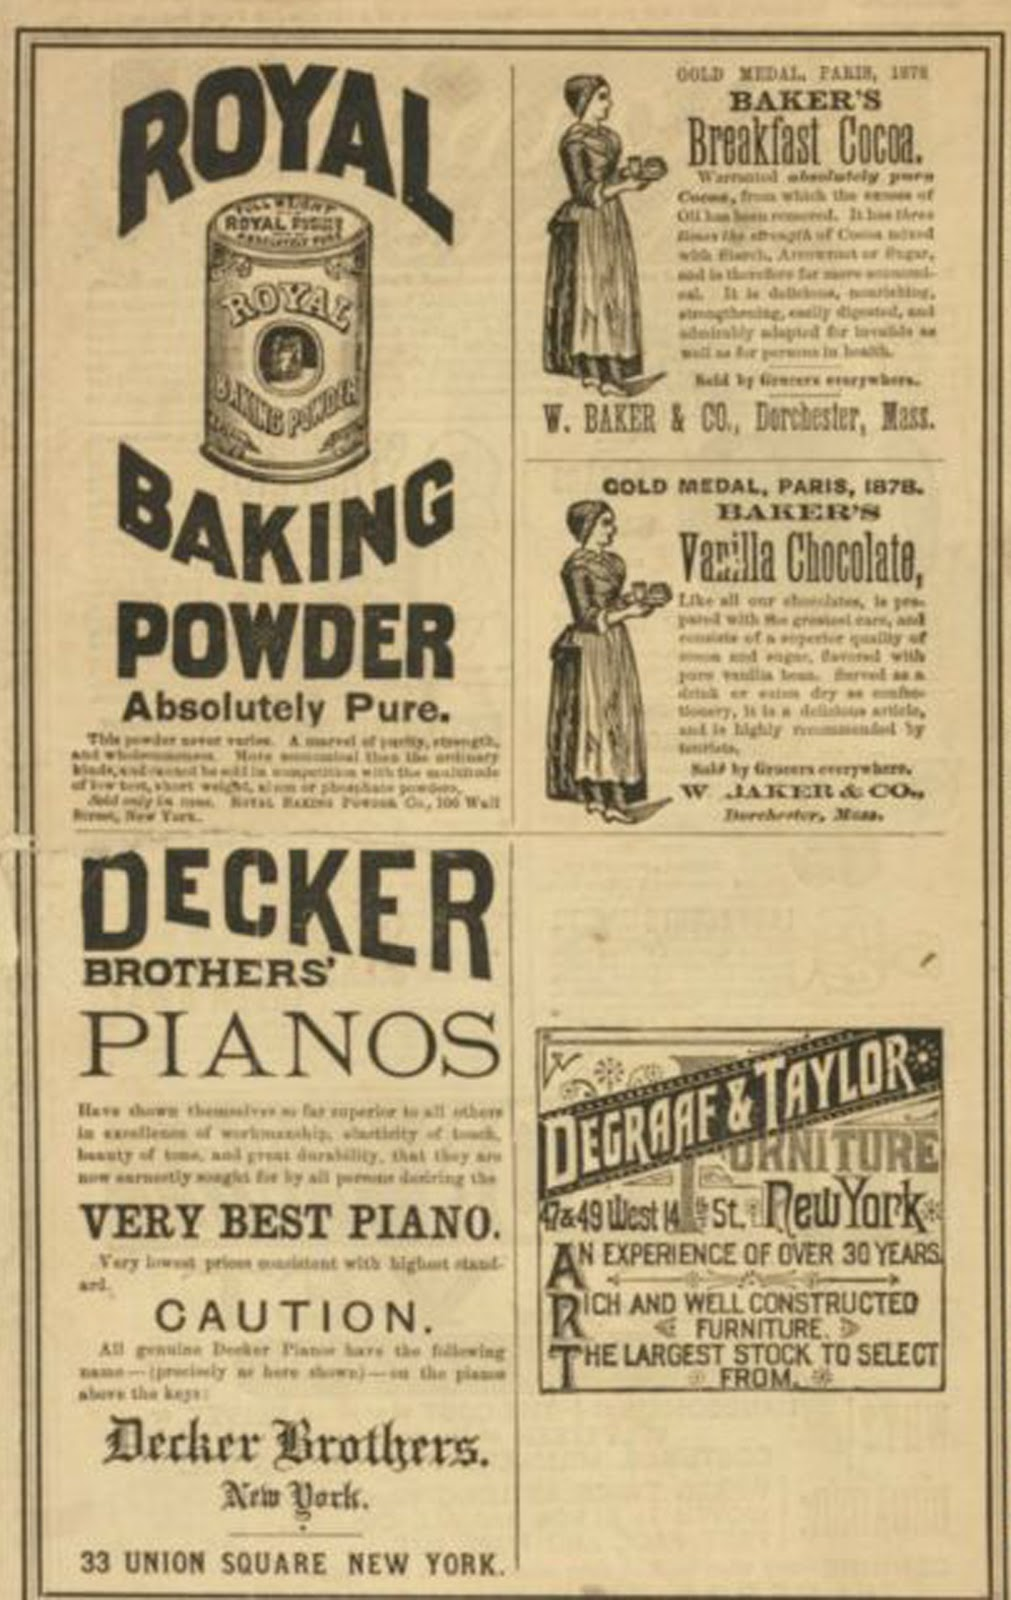 Nice Old Fashioned Newspaper Template Free Images Editable Old